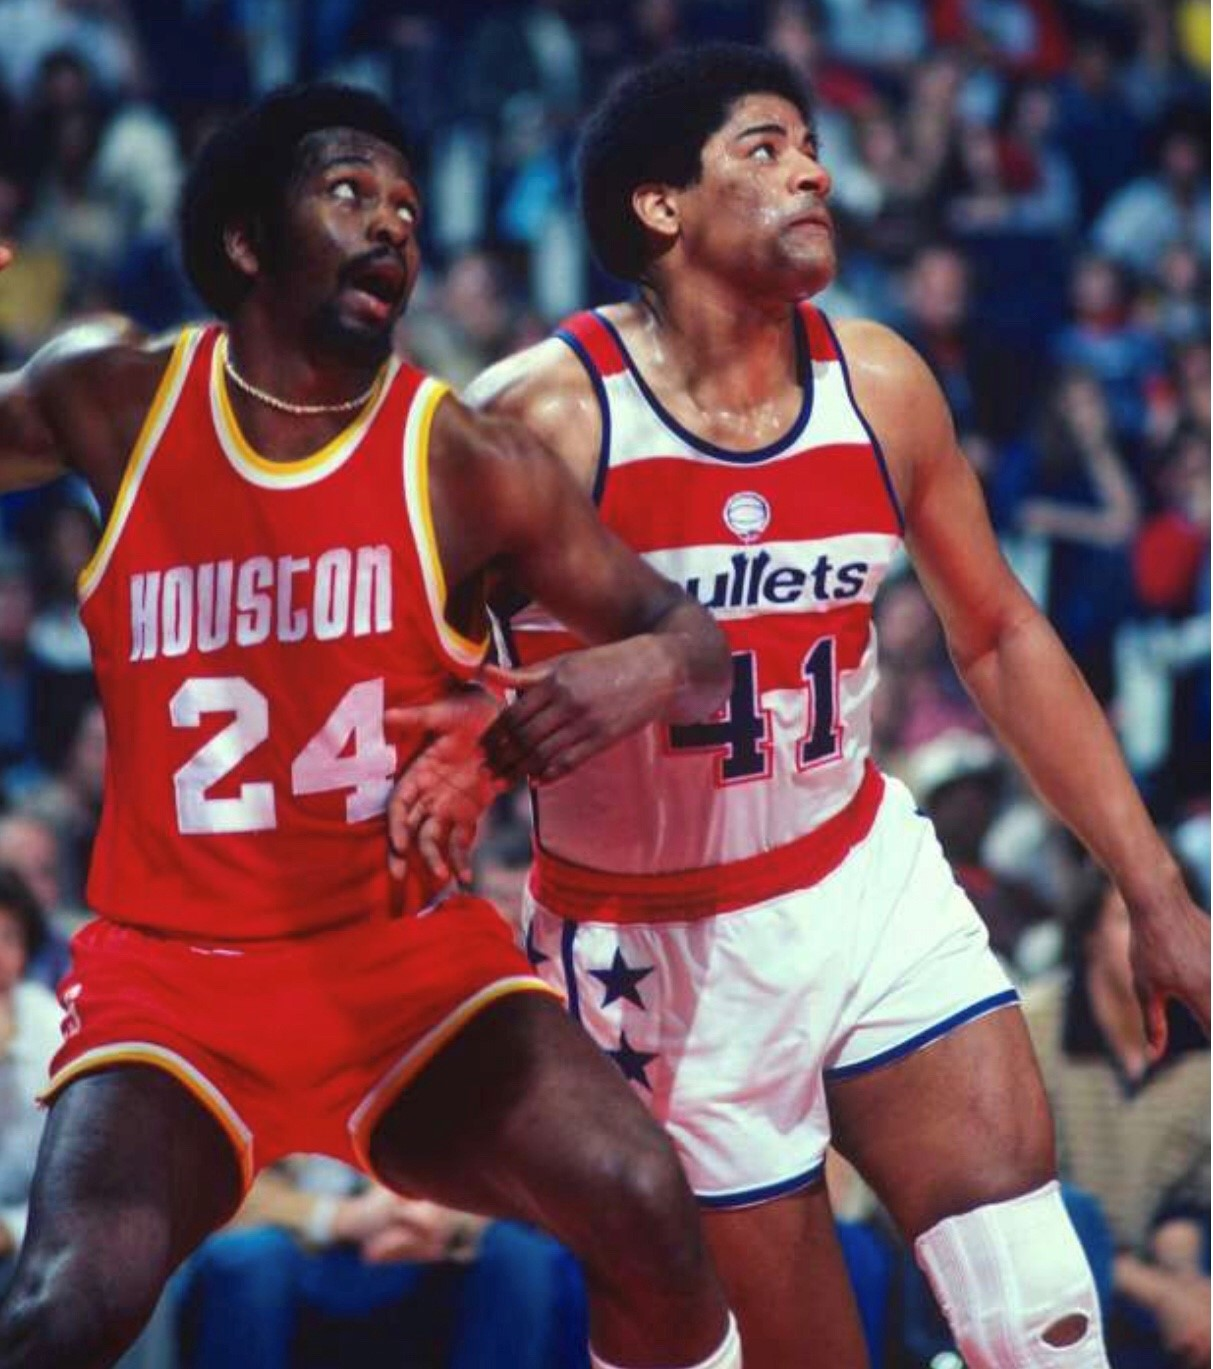 wes unseld - photo #22